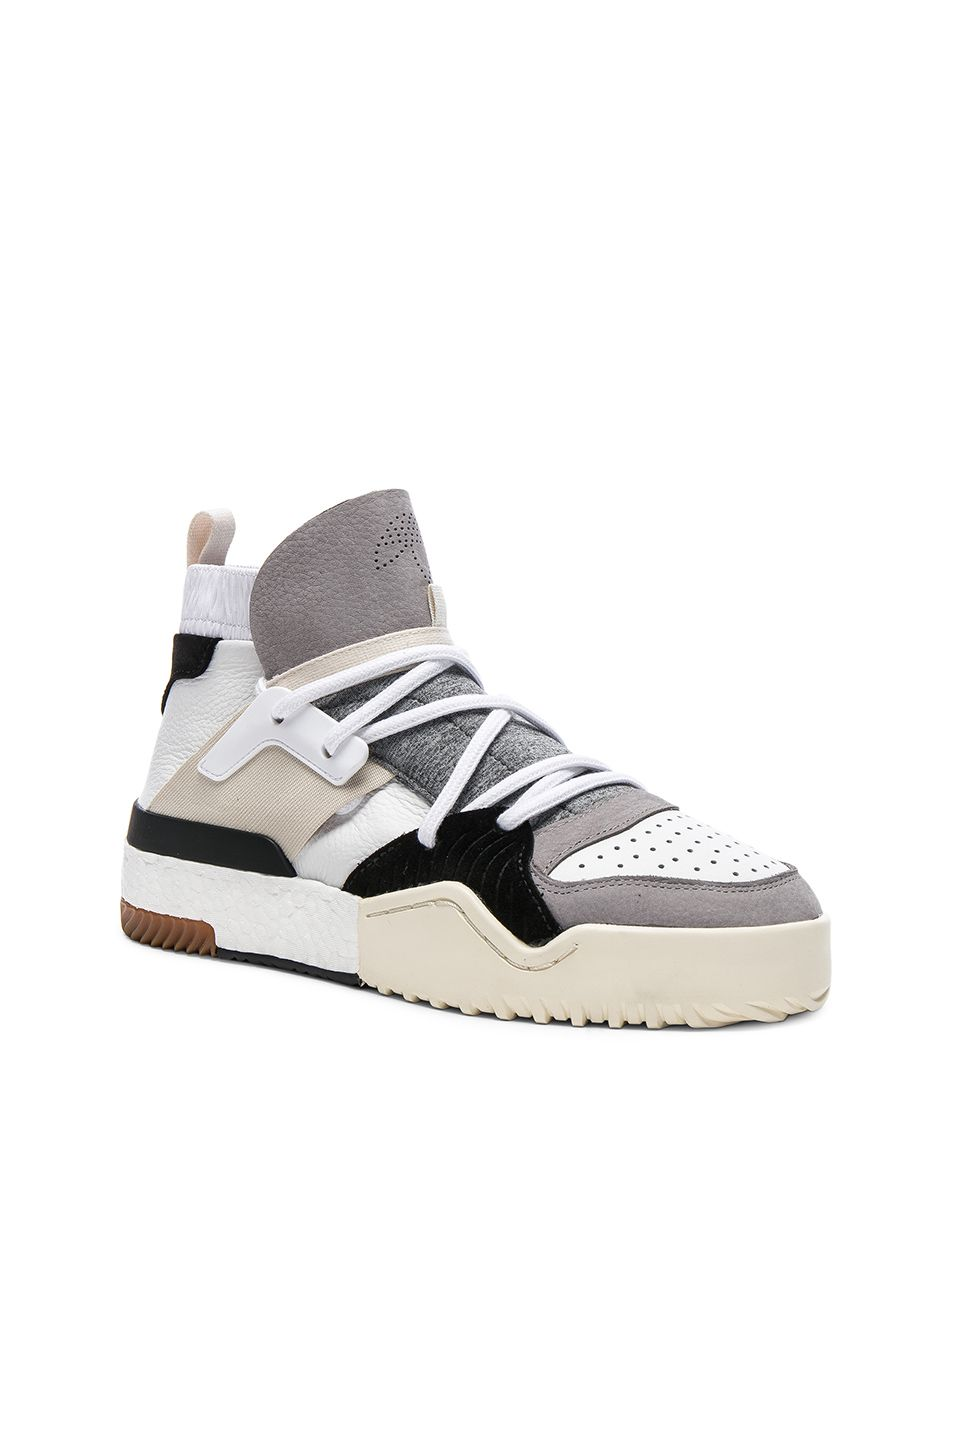 Suede Trimmed Leather High Top Top Top Sneakers, Blanco  Adidas Originals By 36da95